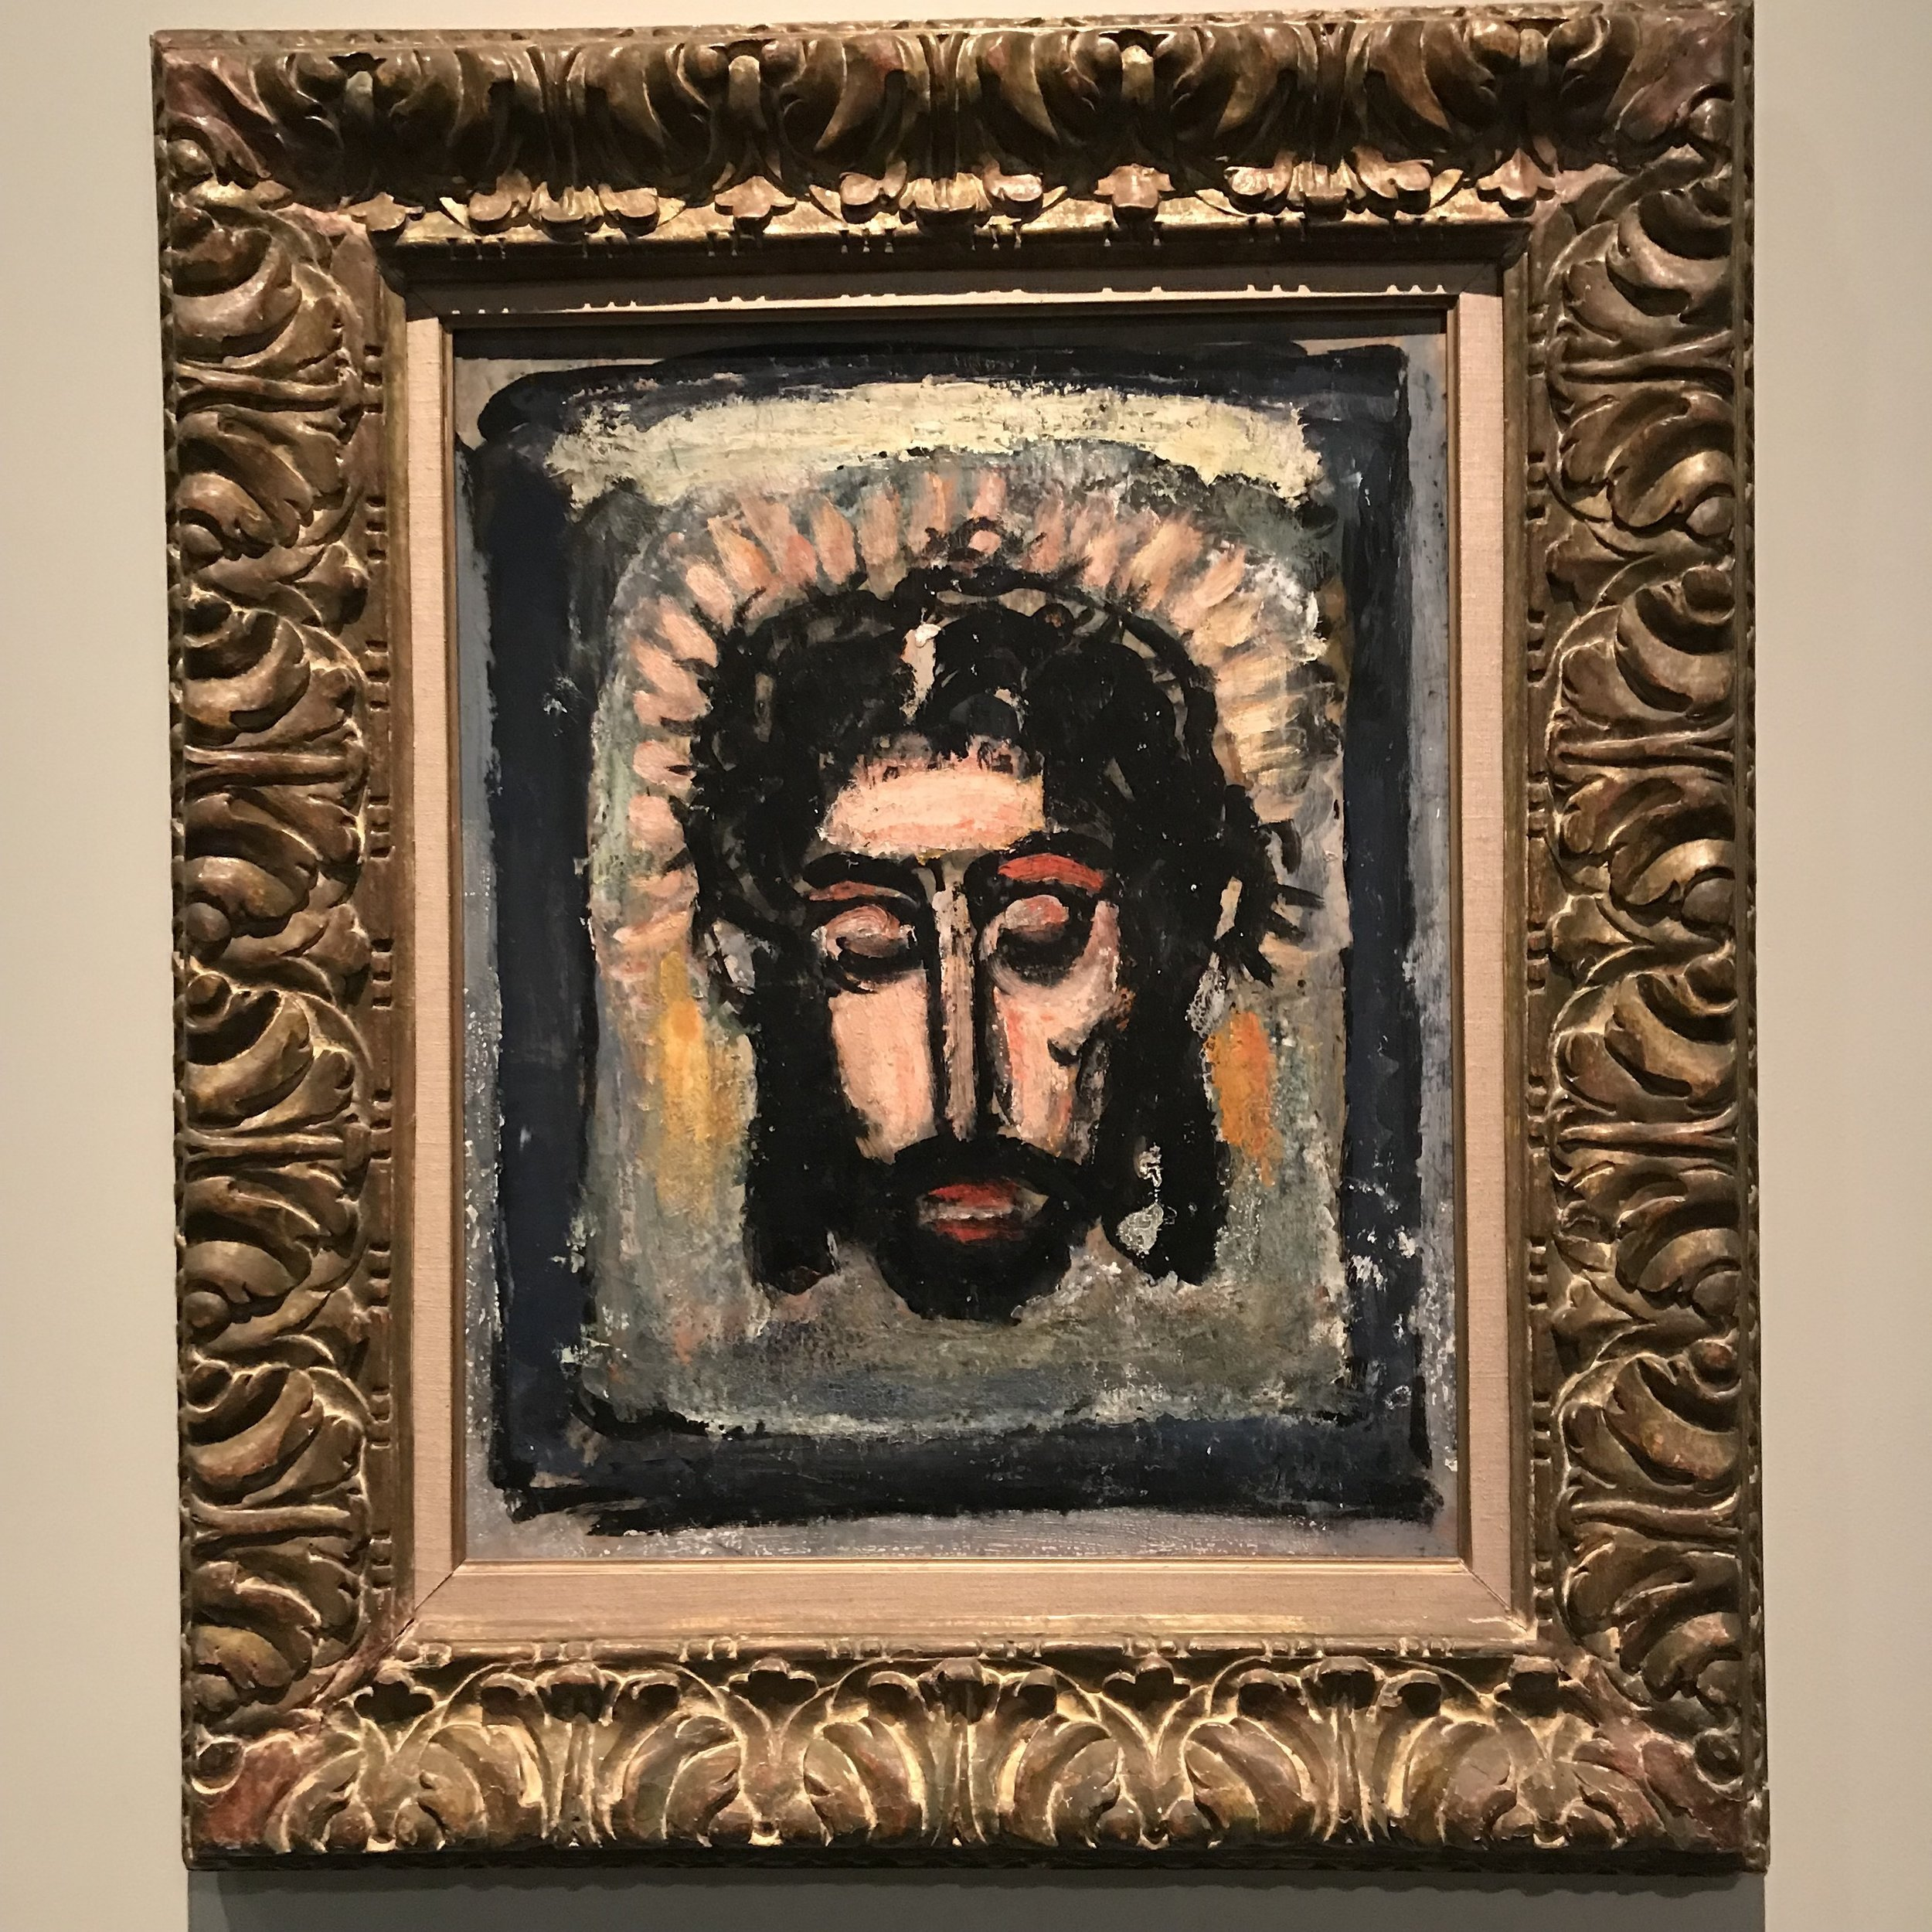 Head of Christ (1932 -38 - oil on panel) by George Rouault (1871 - 1958) of France